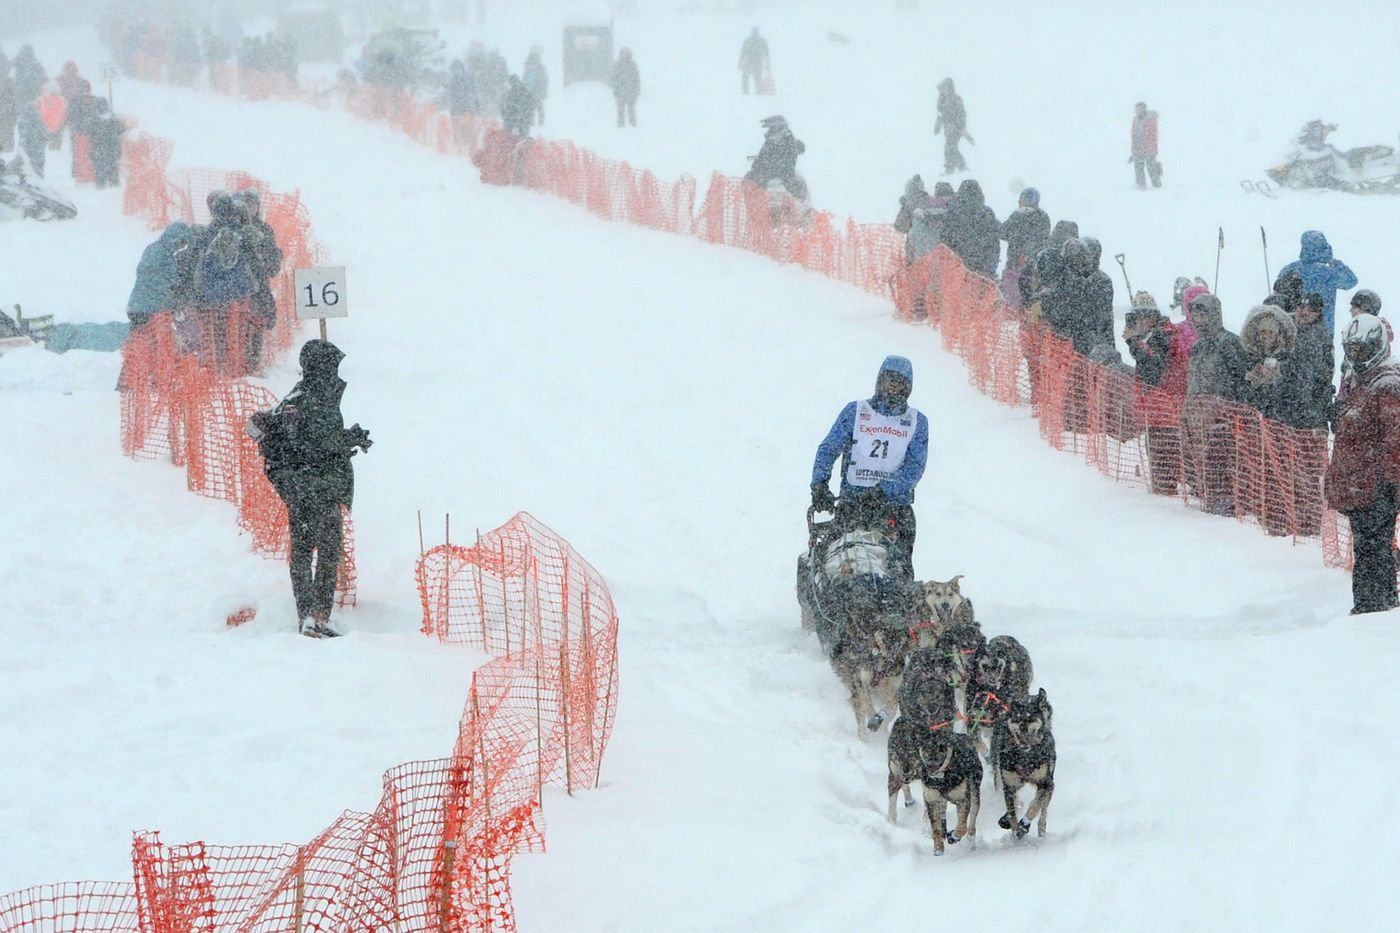 Nicolas Petit drives his dog team across Willow Lake in a snowstorm during the restart of the Iditarod Trail Sled Dog Race on Sunday. (Bill Roth / ADN)